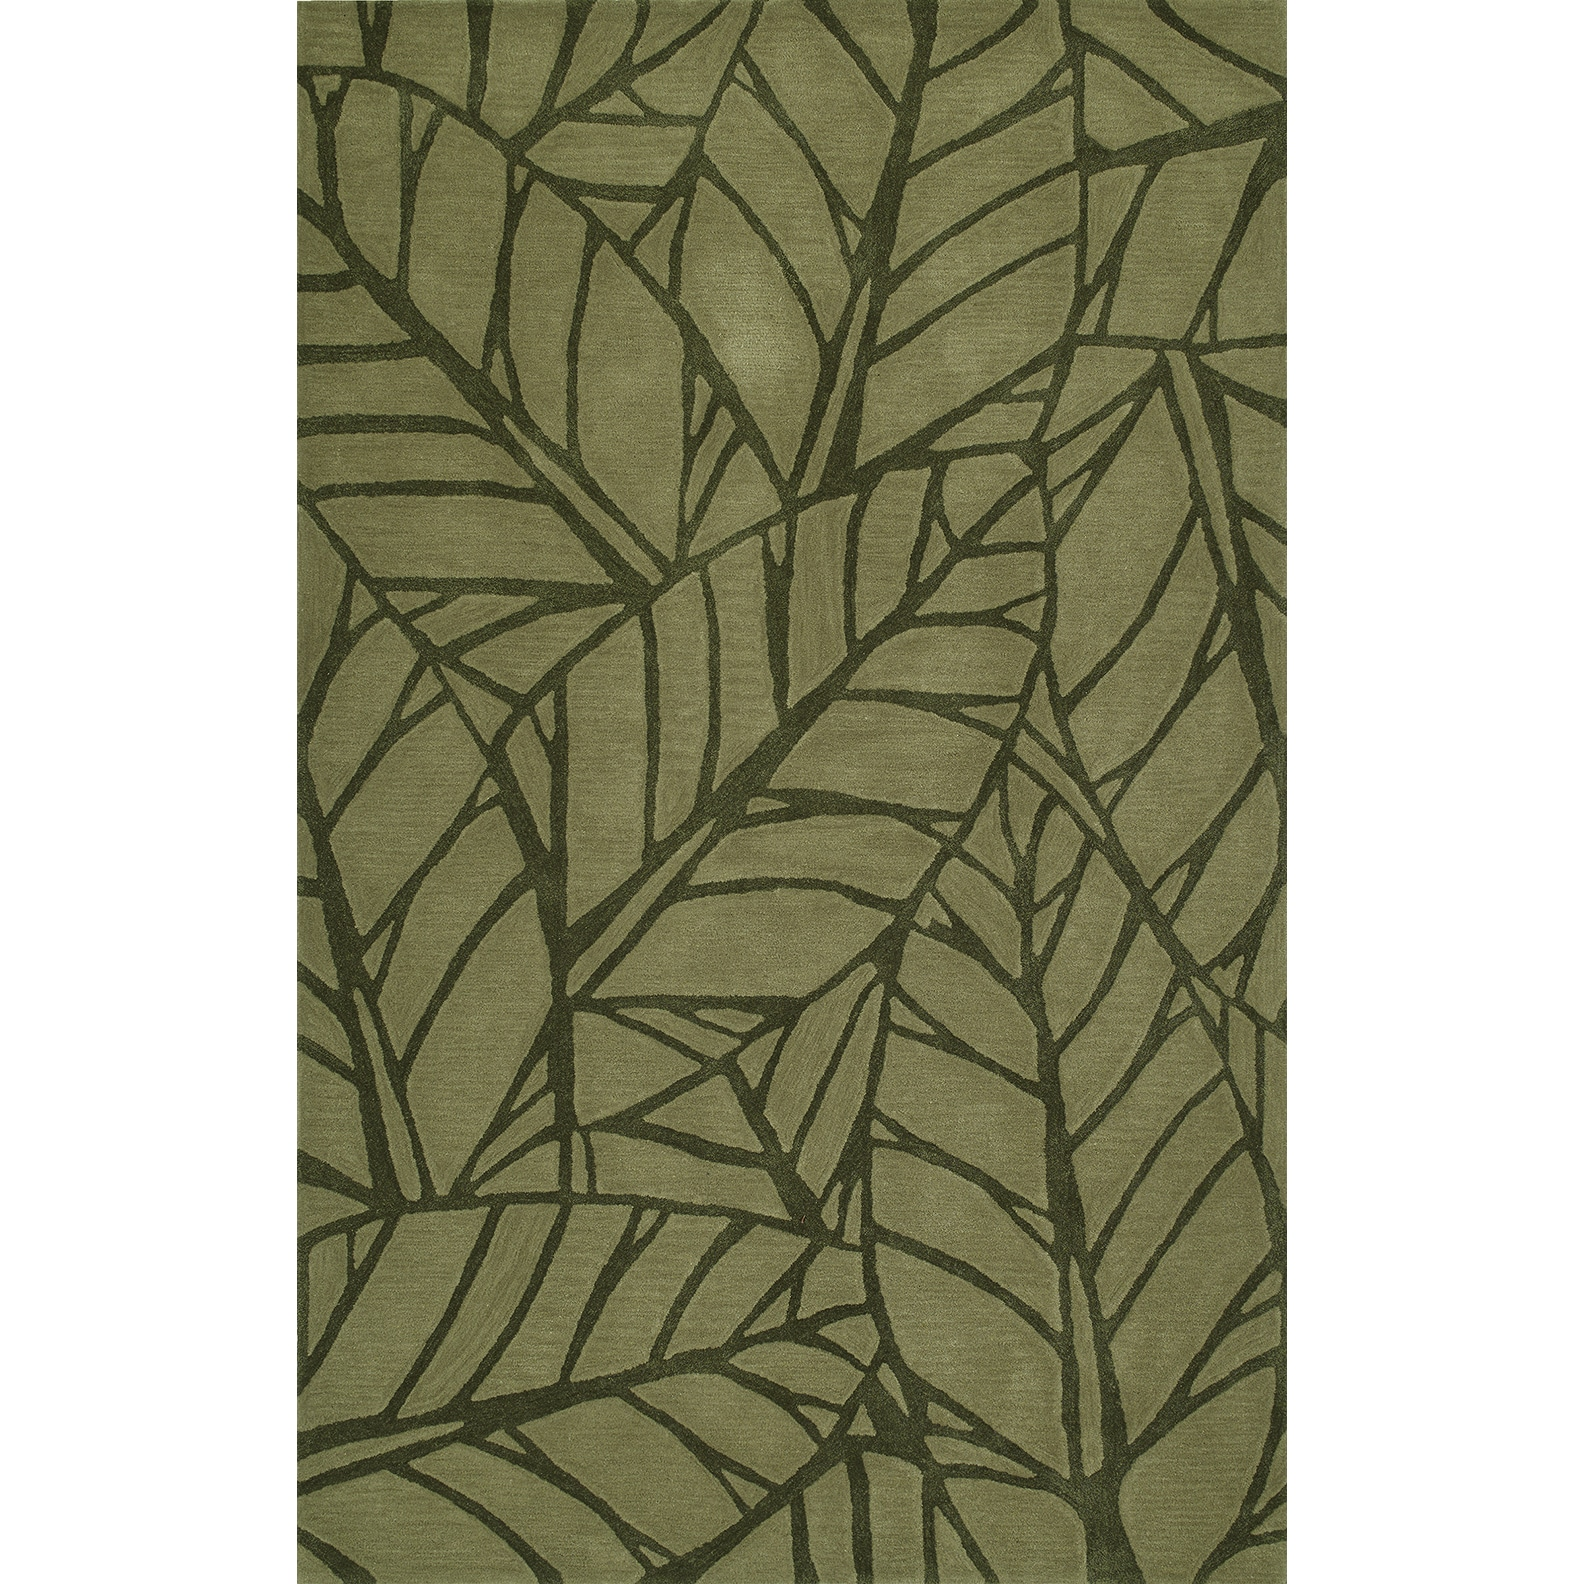 Shop Addison Rugs Zenith Bold Leaf Olive Green Area Rug - 8\' x 10 ...